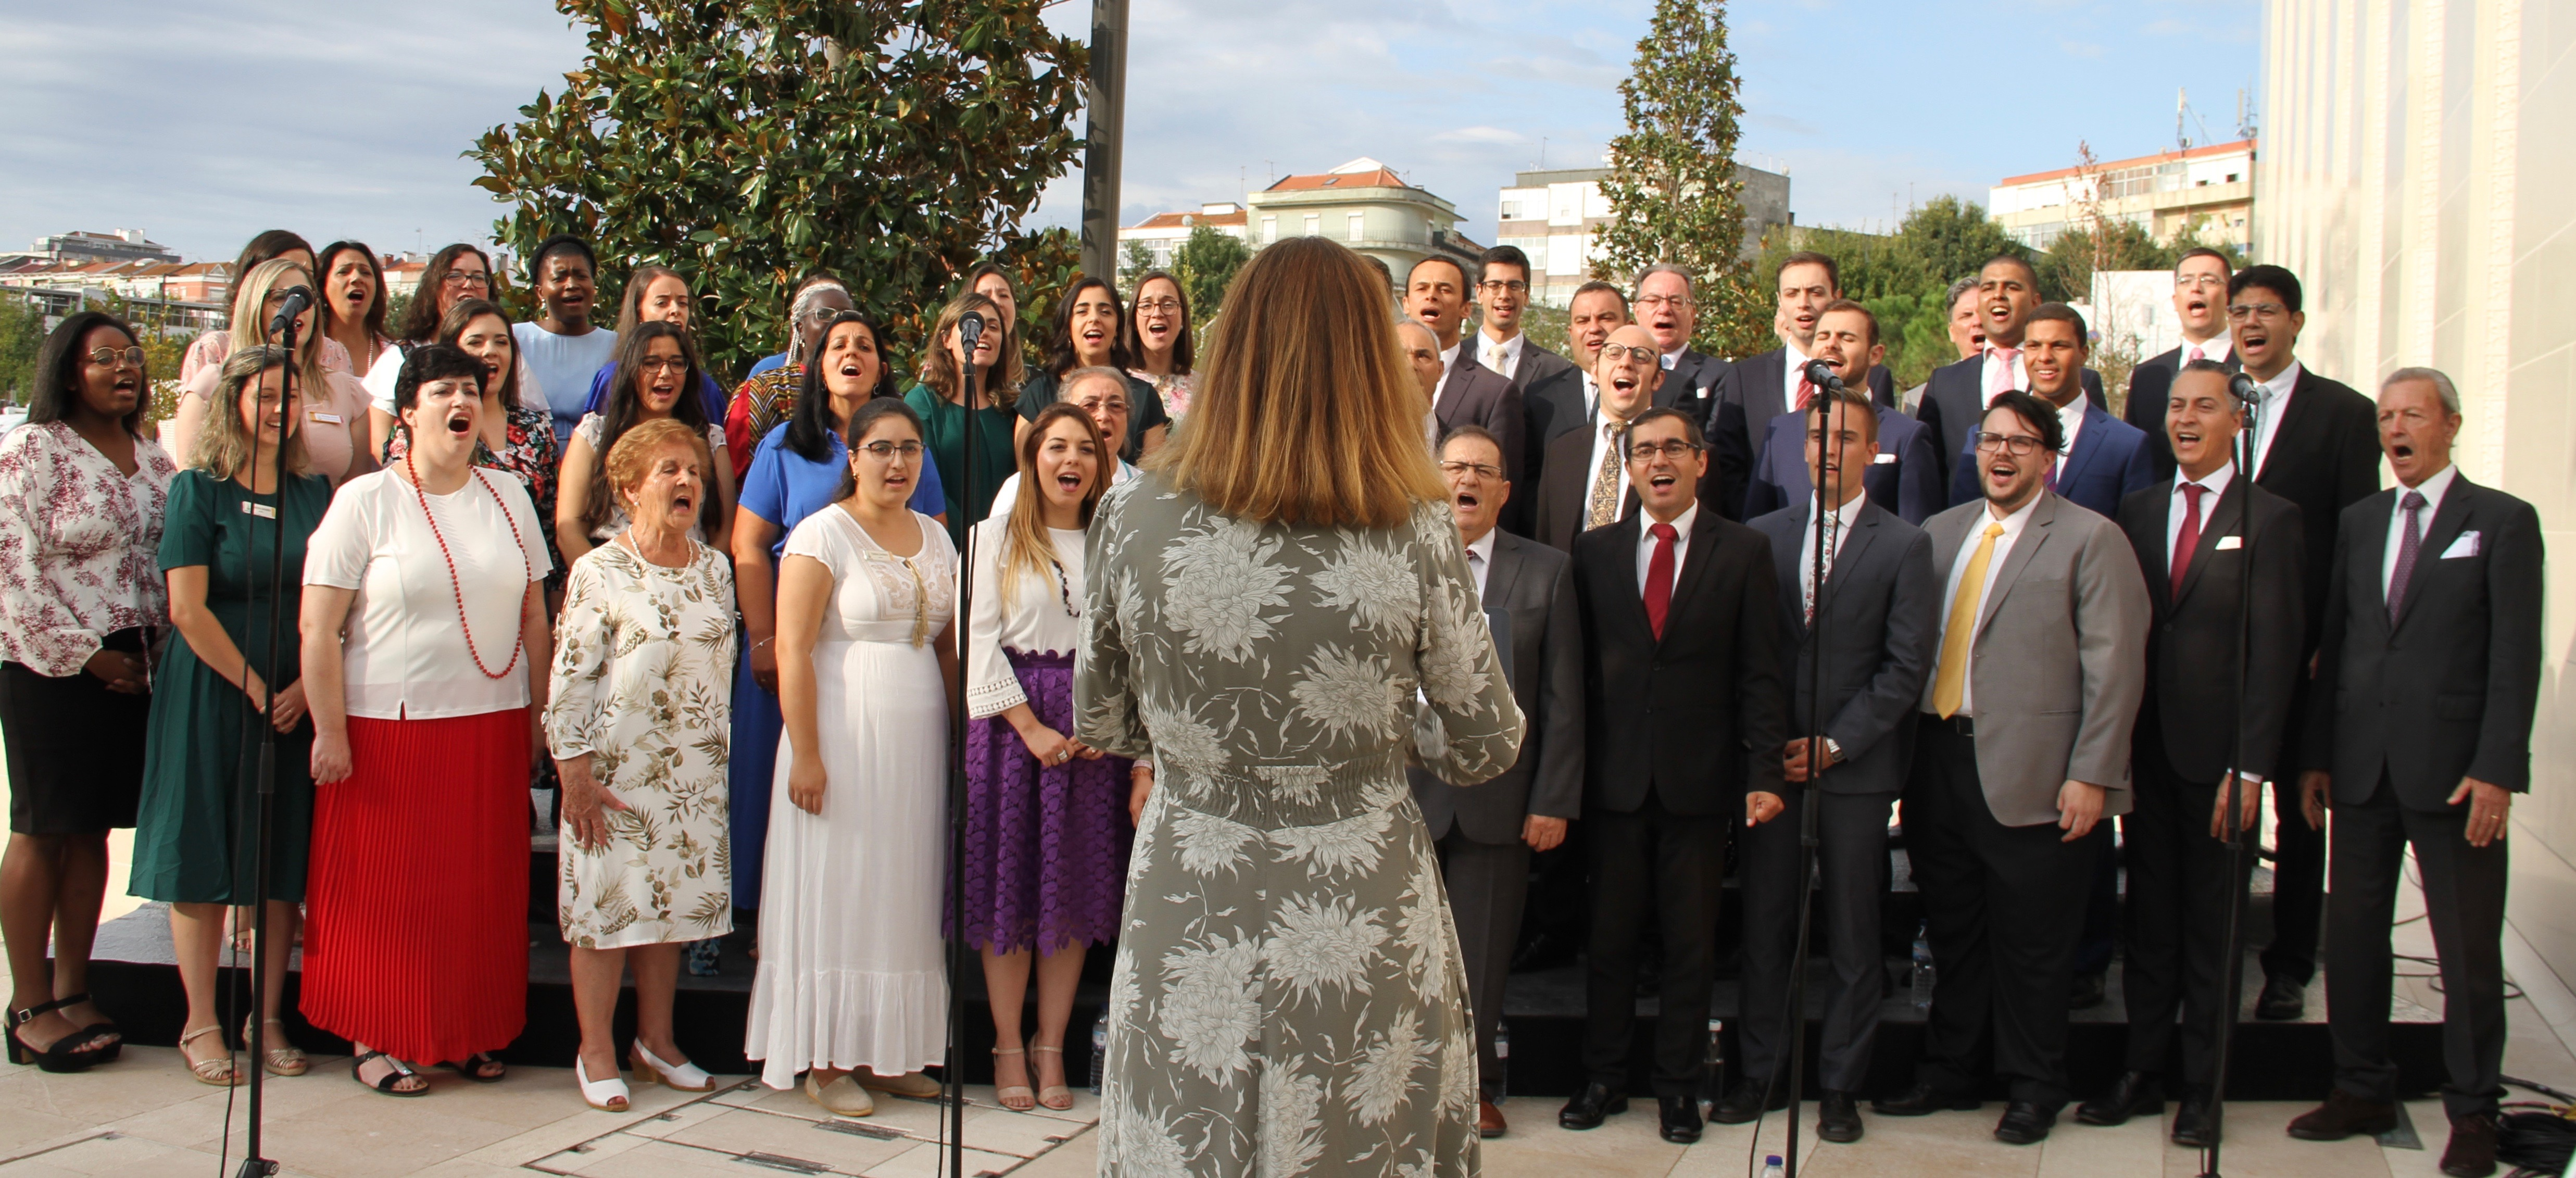 A choir of local members sings at the cornerstone ceremony of the Lisbon Portugal Temple during its dedication on Sunday, Sept. 15, 2019.